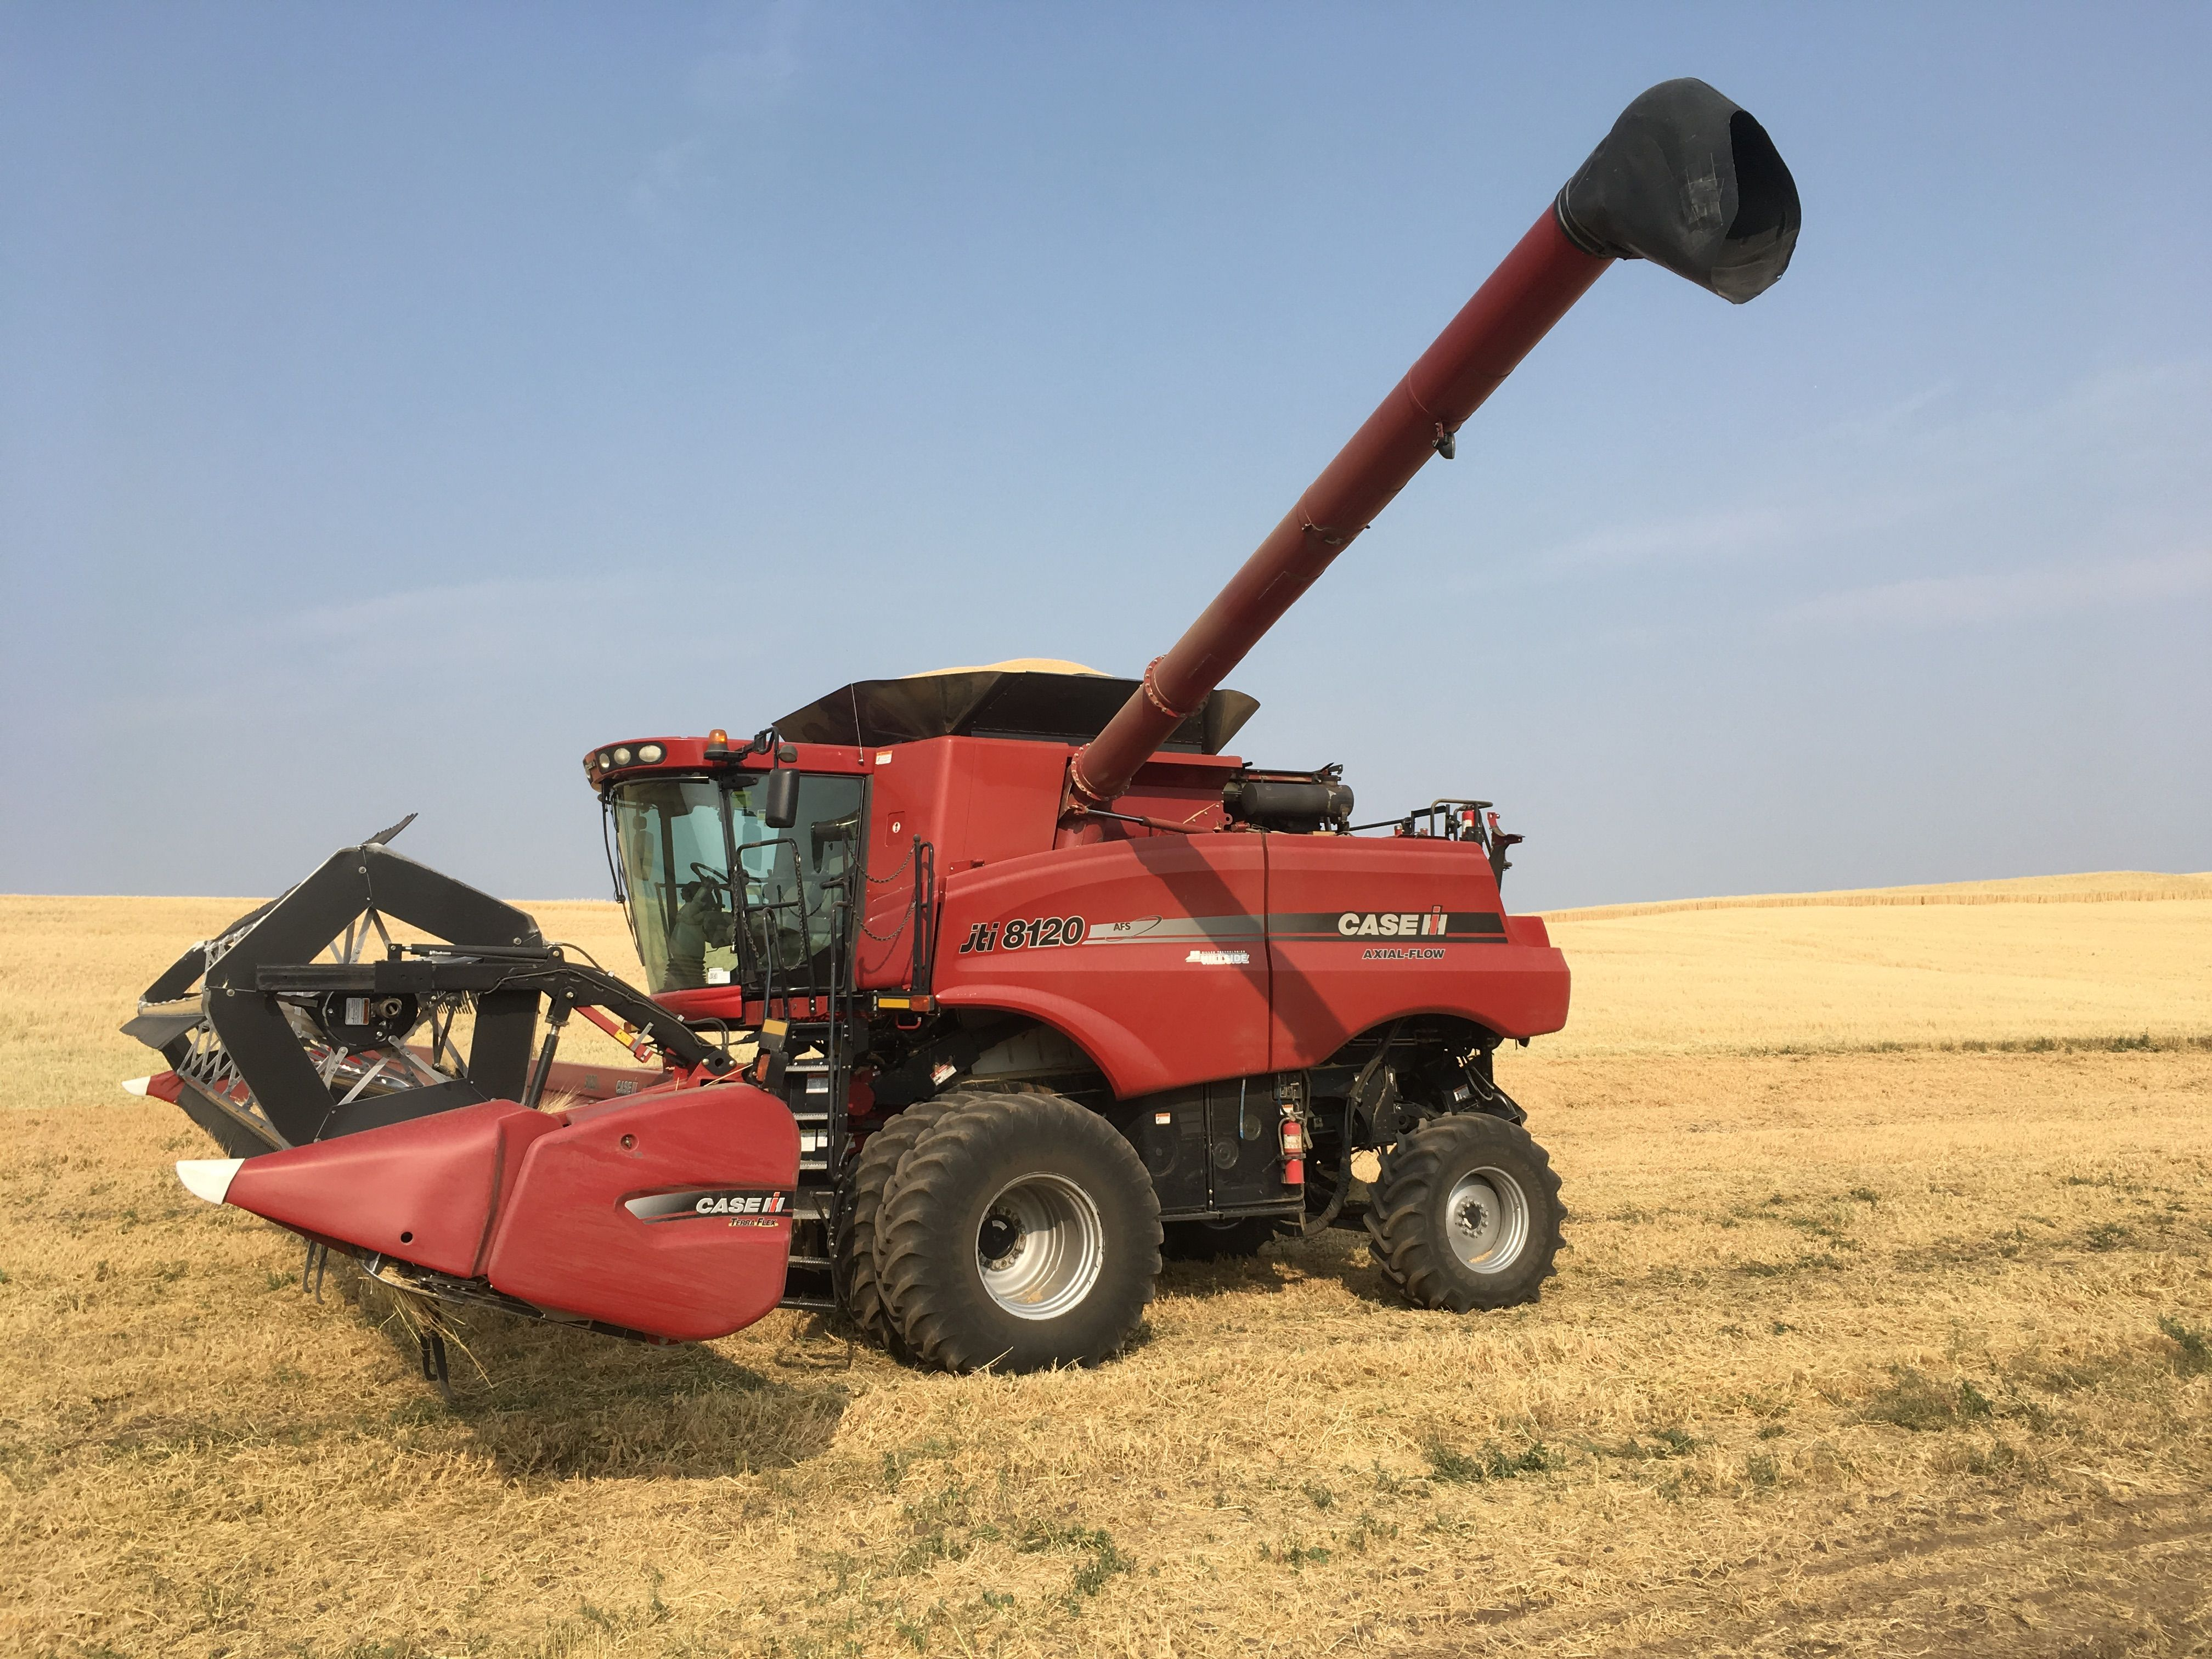 Pin by tom h on Farming on the Palouse (WA. state